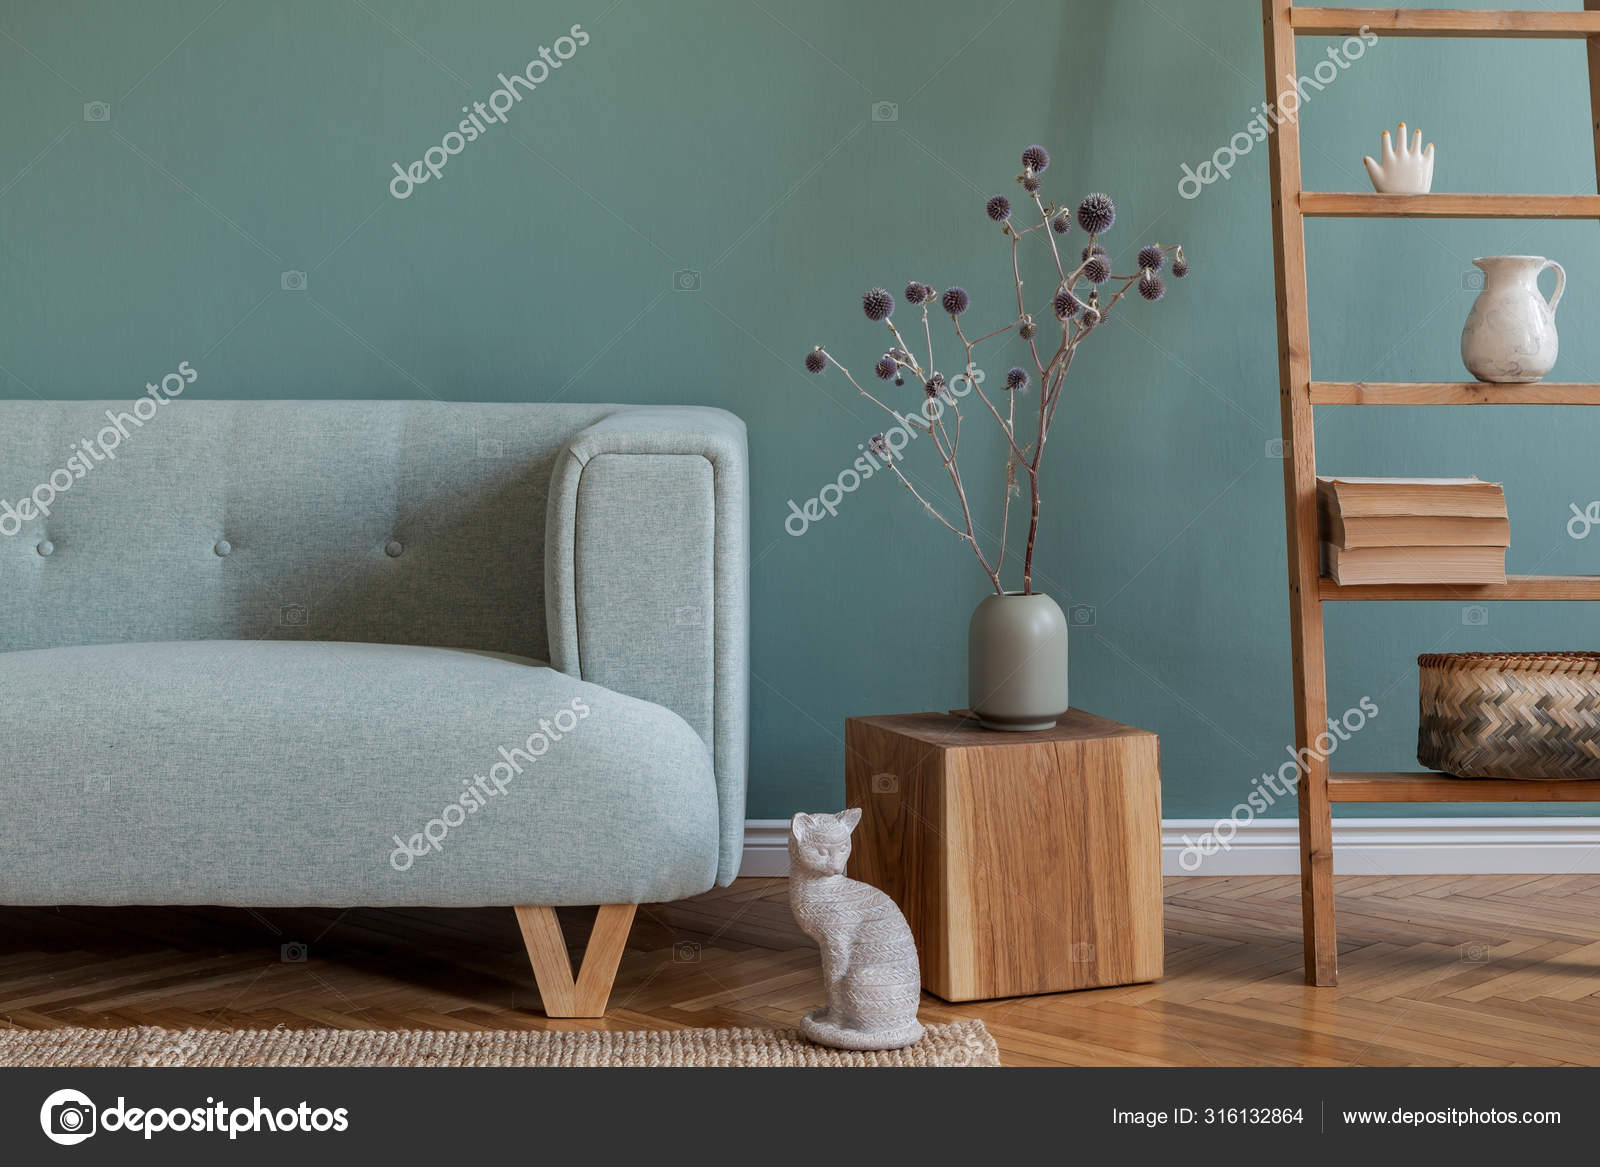 Stylis Composition Living Room Interior Apartment Mint Sofa Wooden Ladder Stock Photo C Followtheflow 316132864